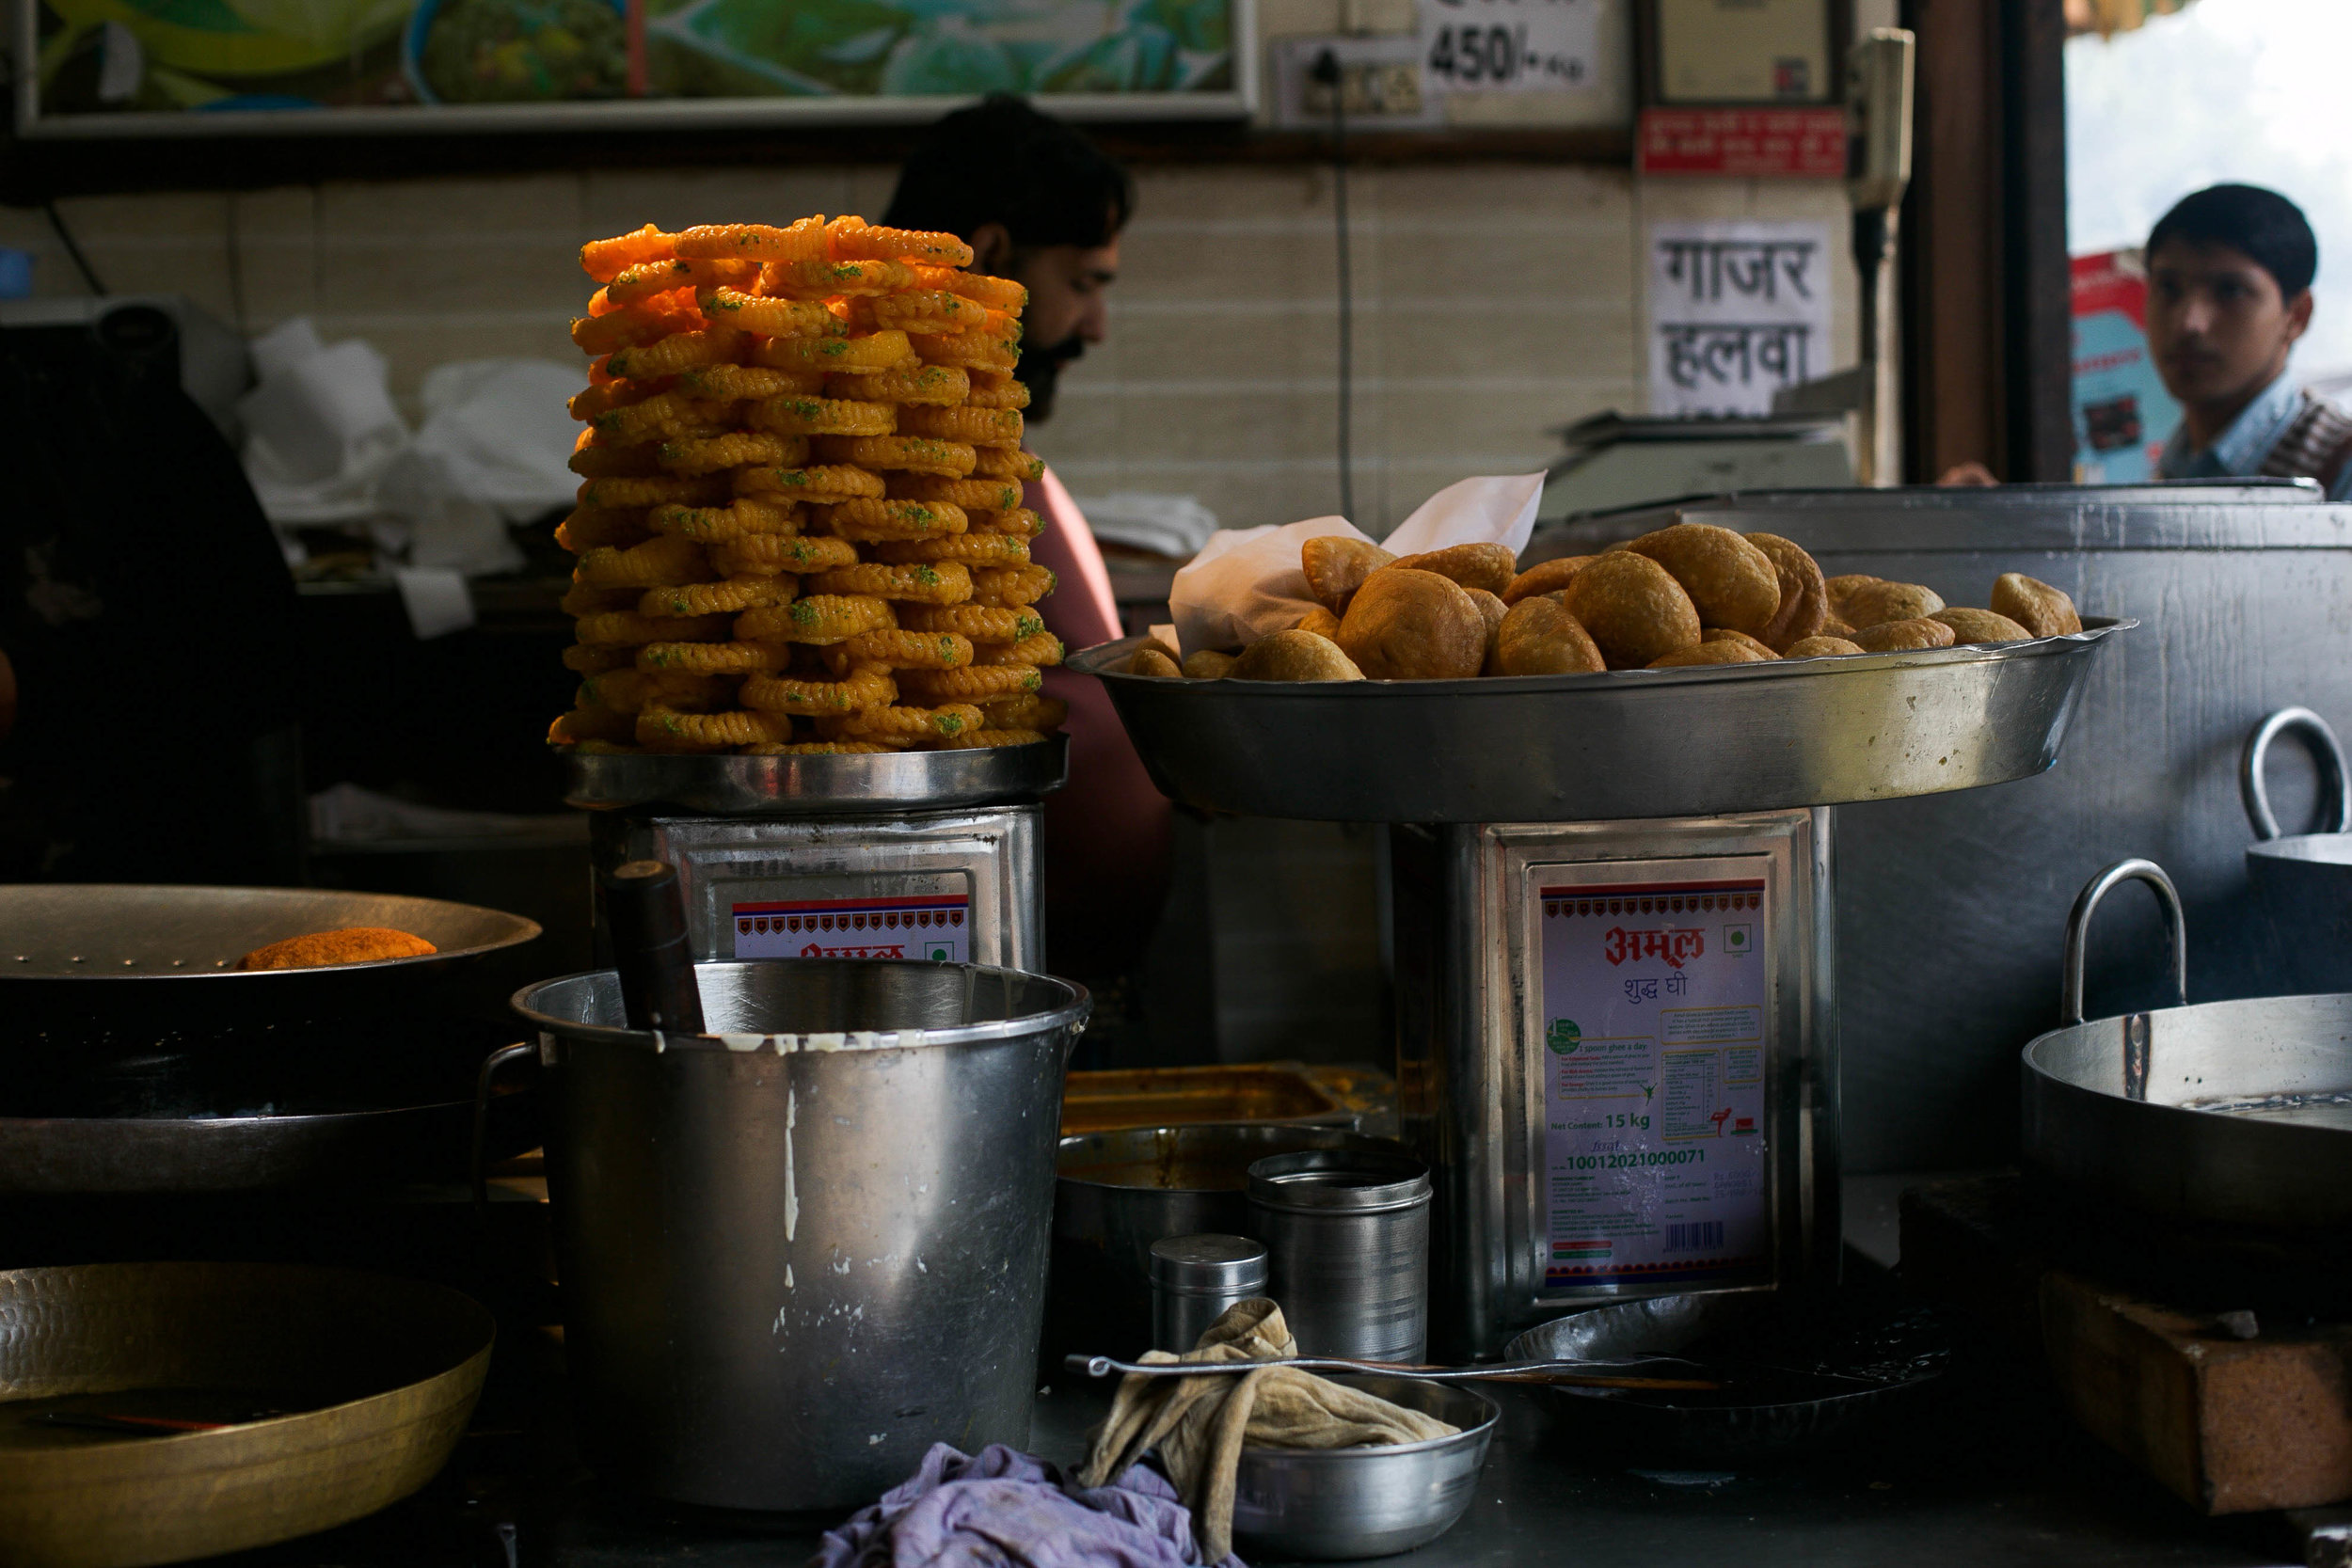 Along the route of our 5-hour walk, Anubhav greets the street vendors and the shopkeepers like old friends. He has been bringing tourists from within the country, and beyond, to these lanes for over seven years now.